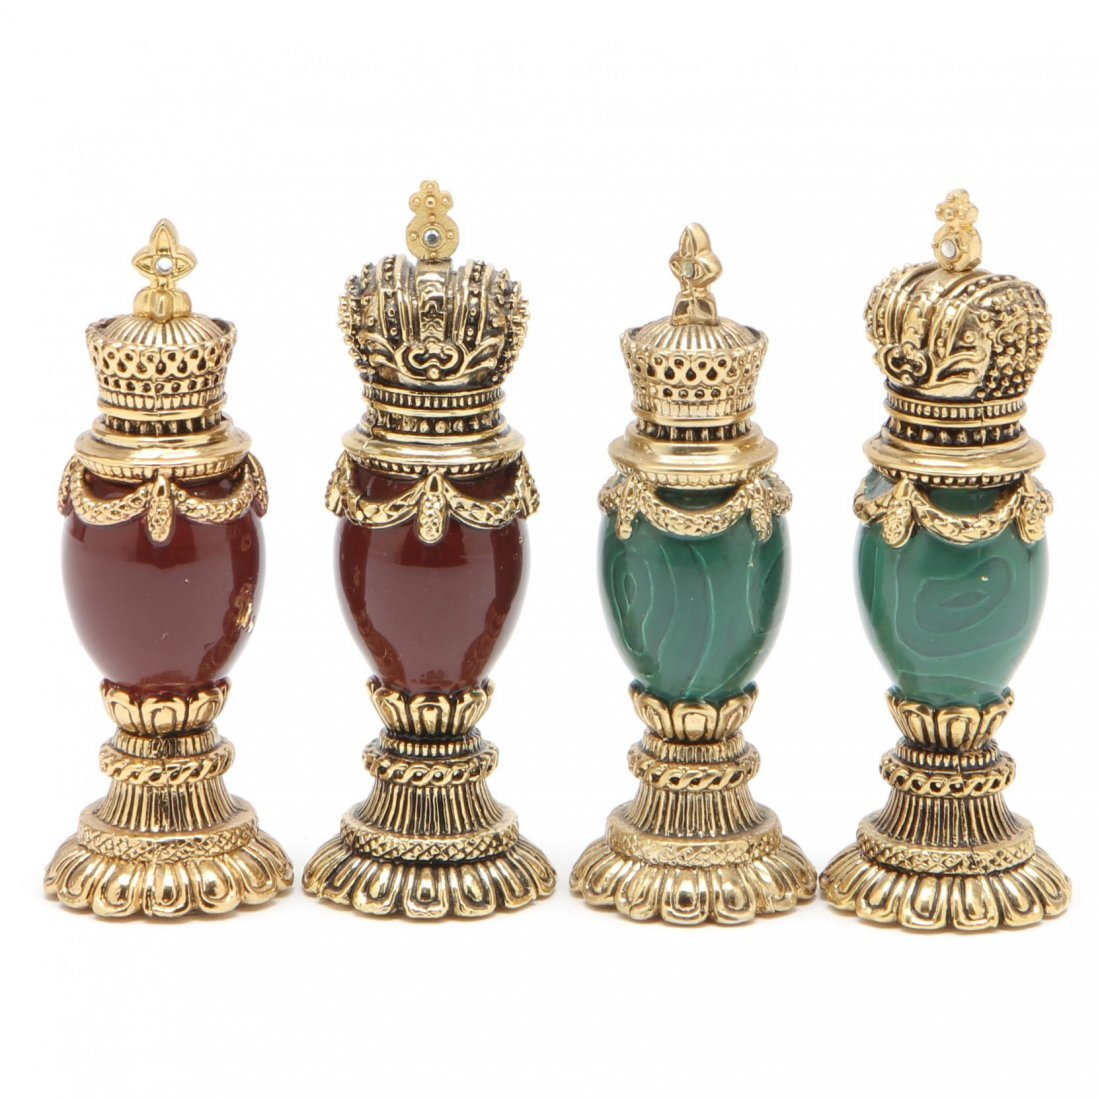 Faberge Imperial Jeweled Chess / Board Limited Edition - 5